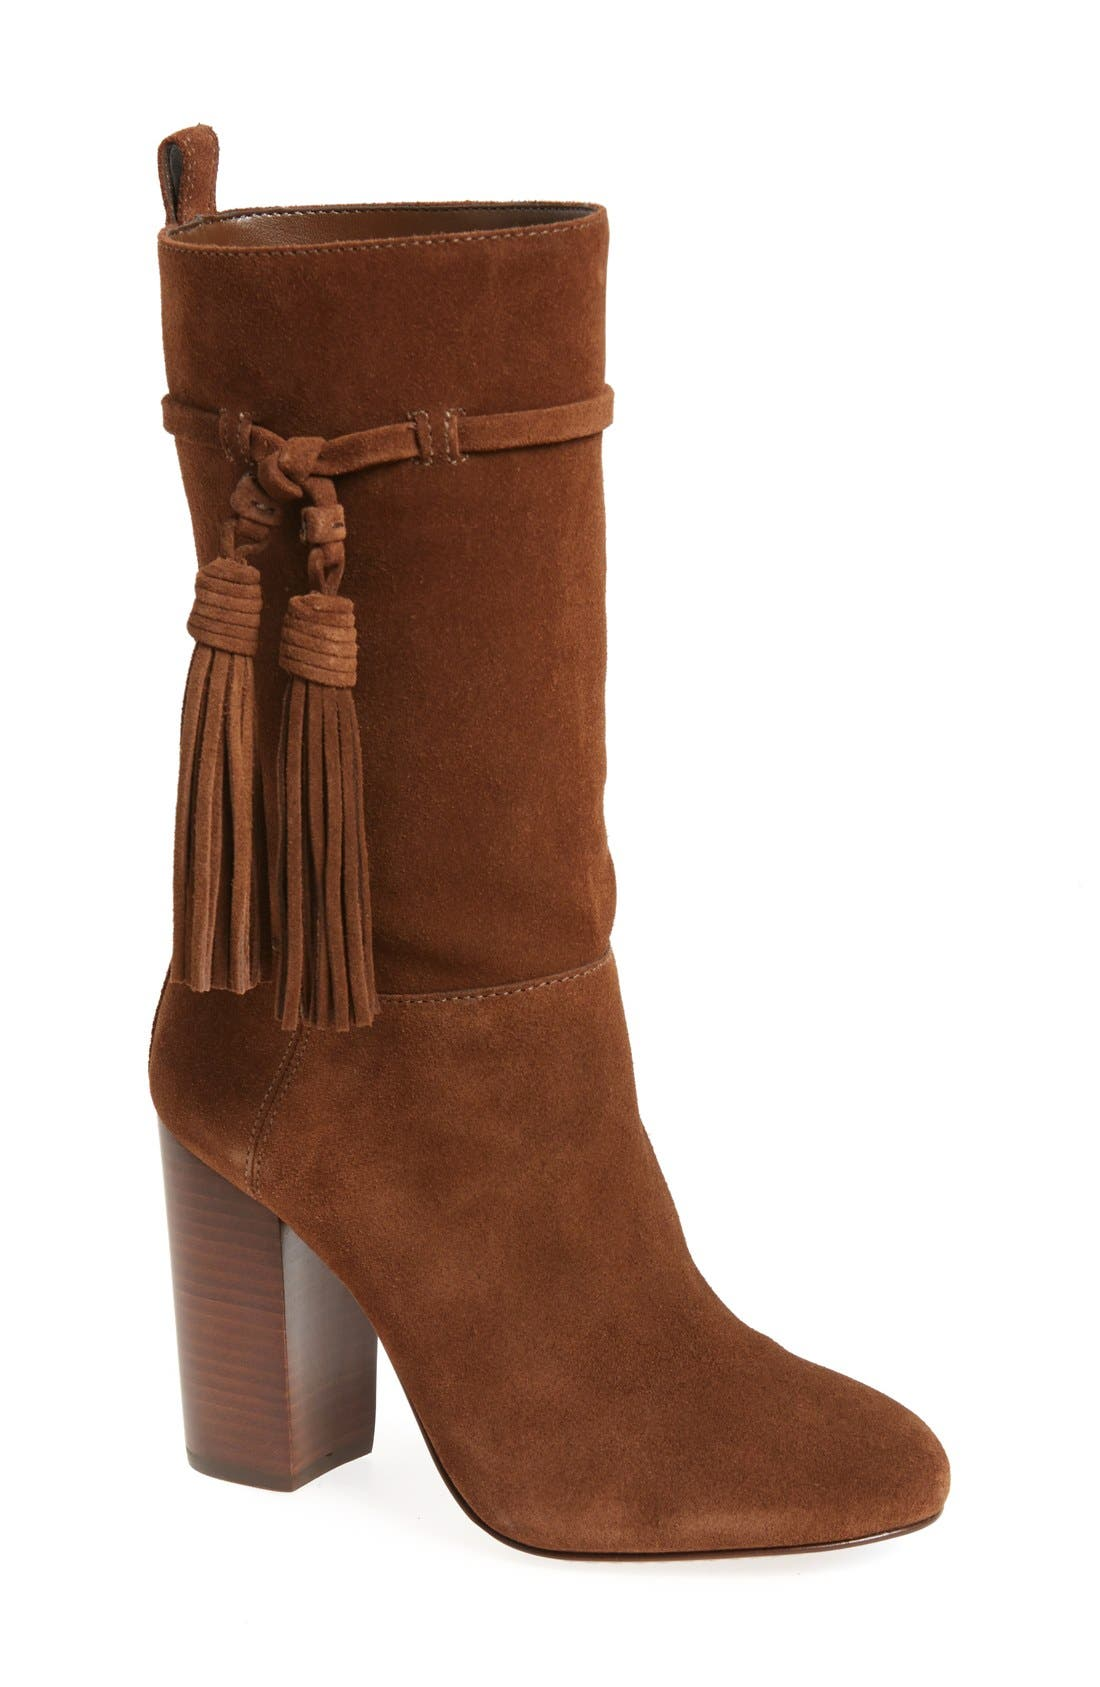 Alternate Image 1 Selected - Vince Camuto 'Fermel' Slouch Tassel Boot (Women)